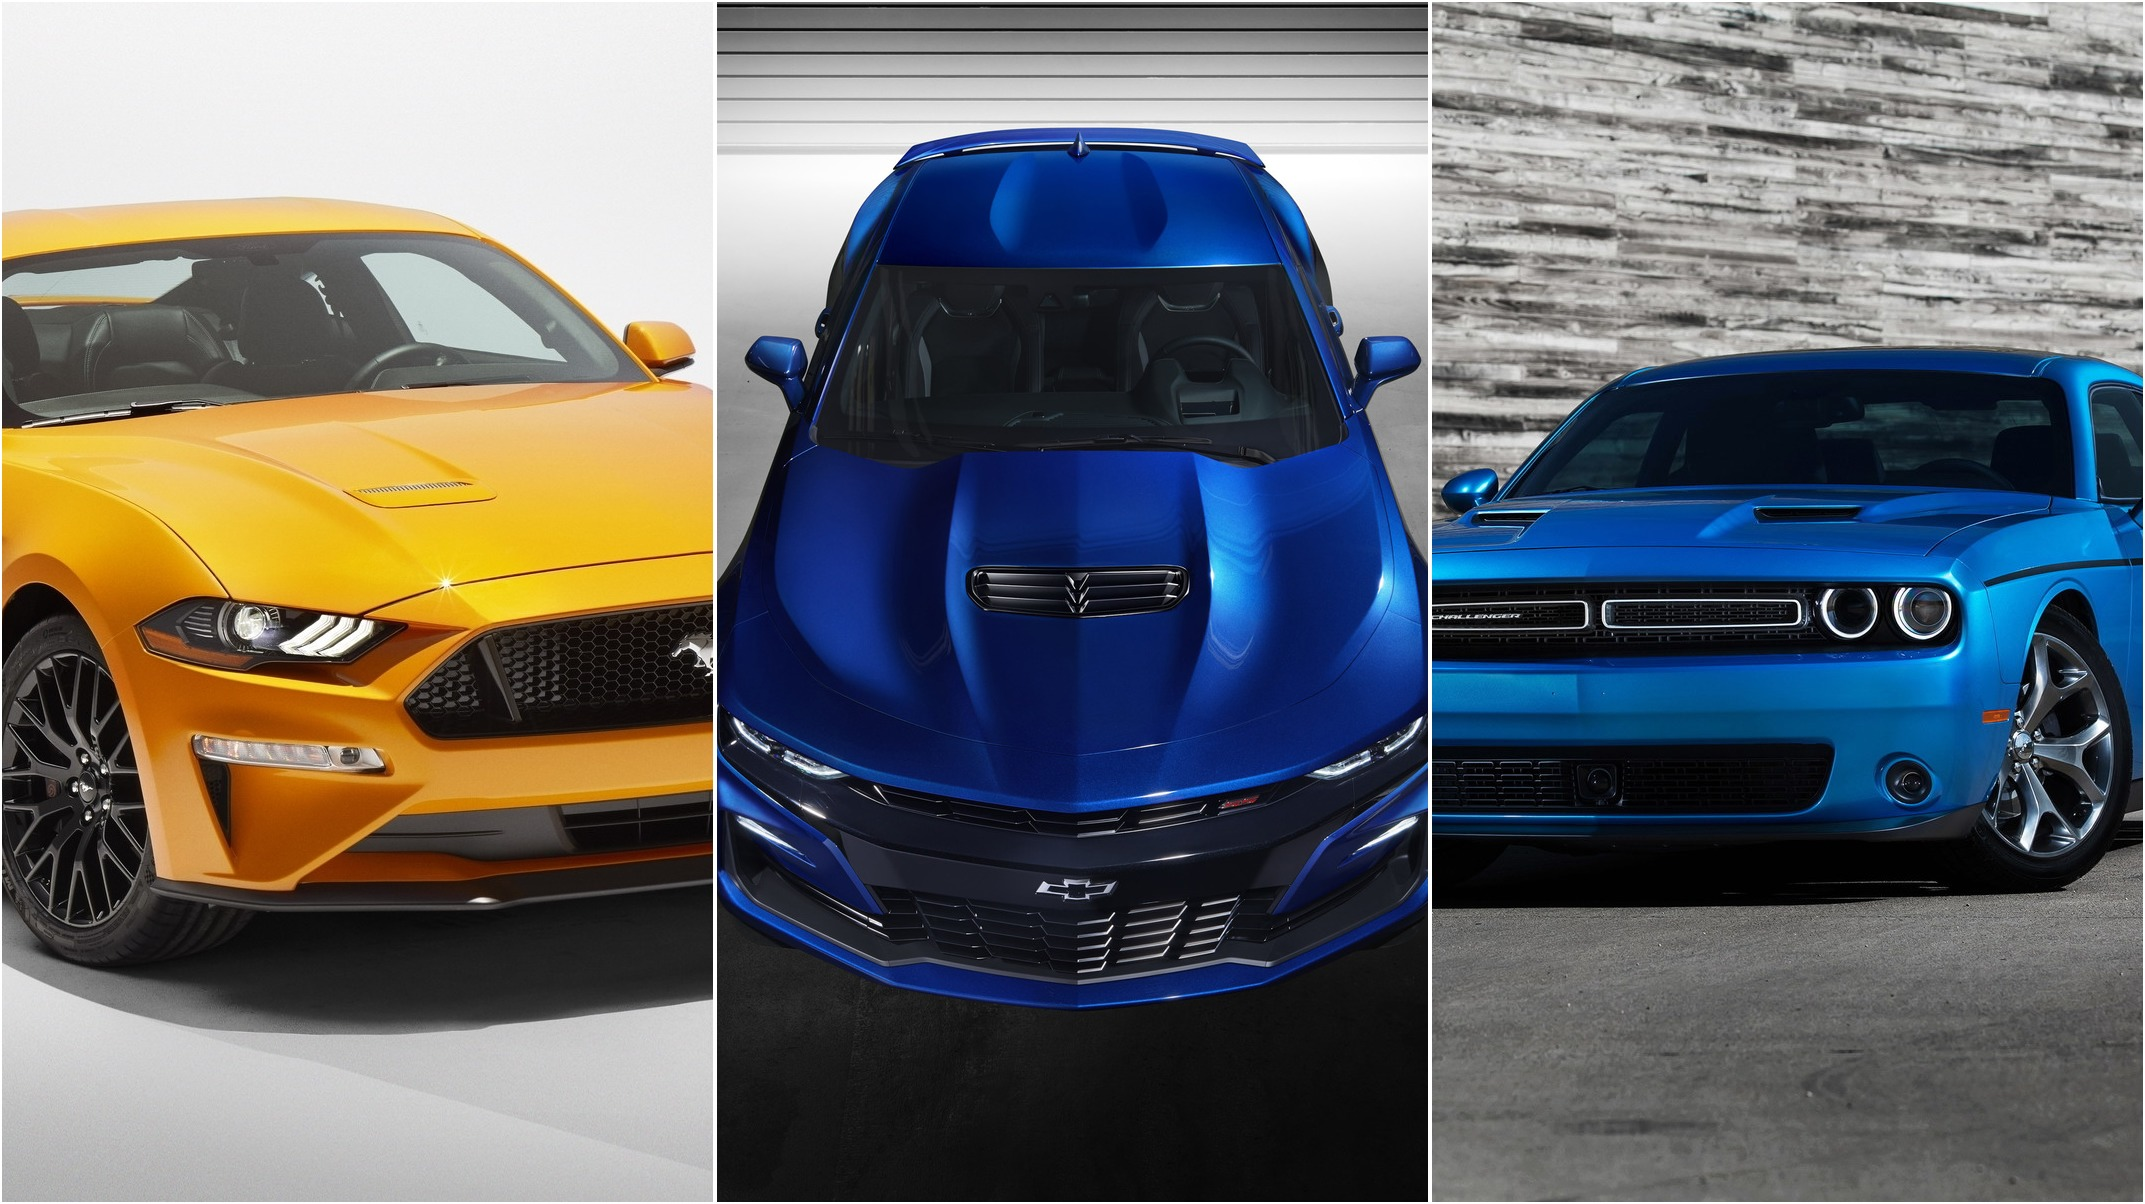 Mustang Vs Camaro Vs Challenger >> Dodge Challenger Emerges Out Of Chevrolet Camaro's Shadow ...